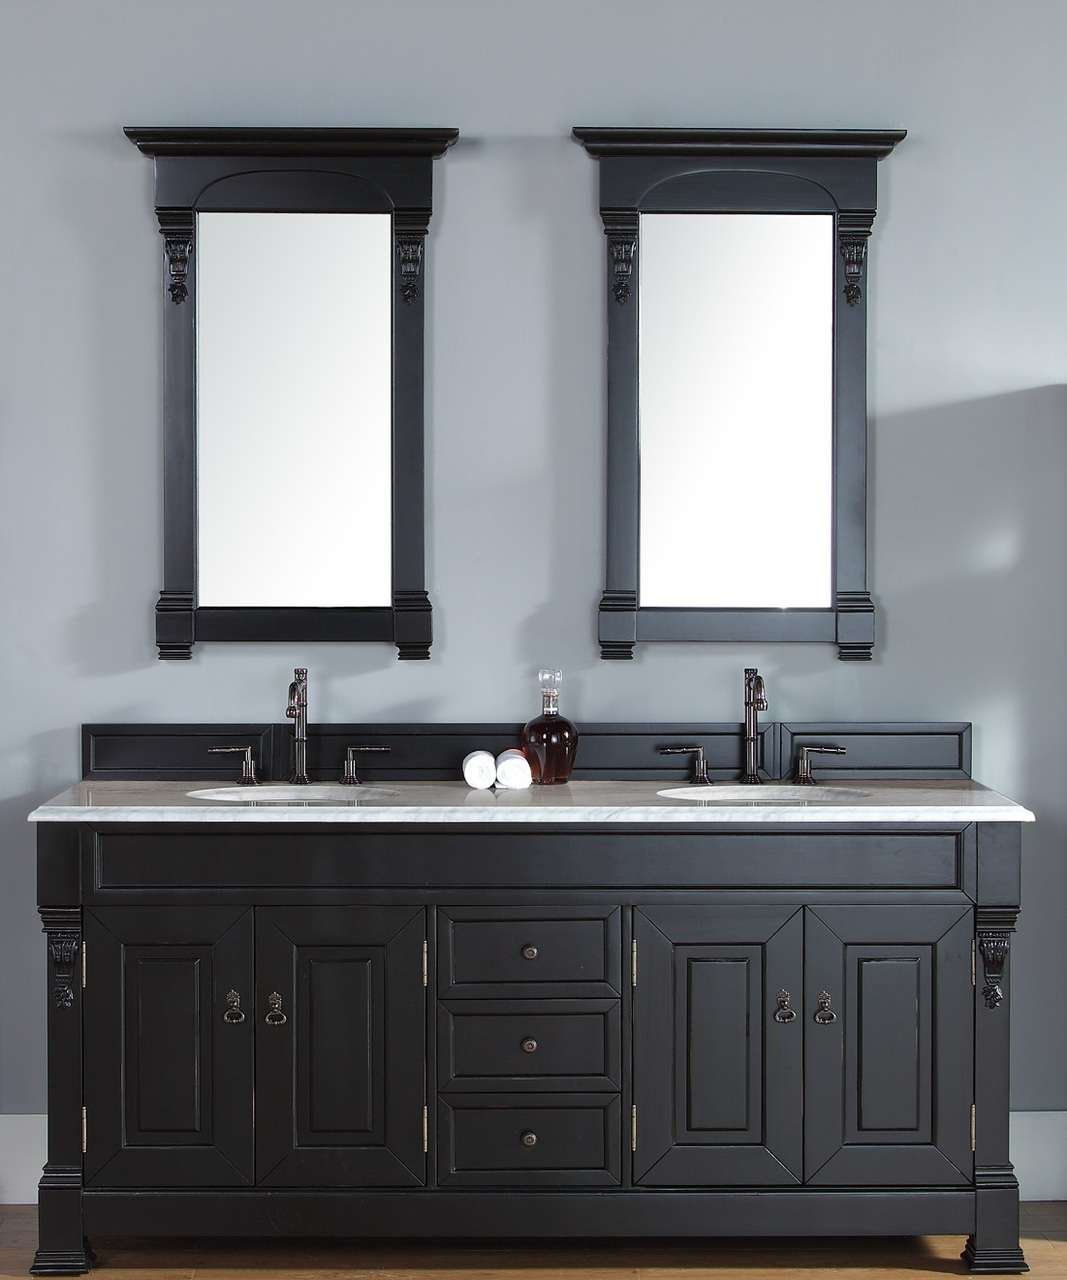 most cottage farmhouse sink bath vanity style and vanities rate first bathroom black inspirations cabinets